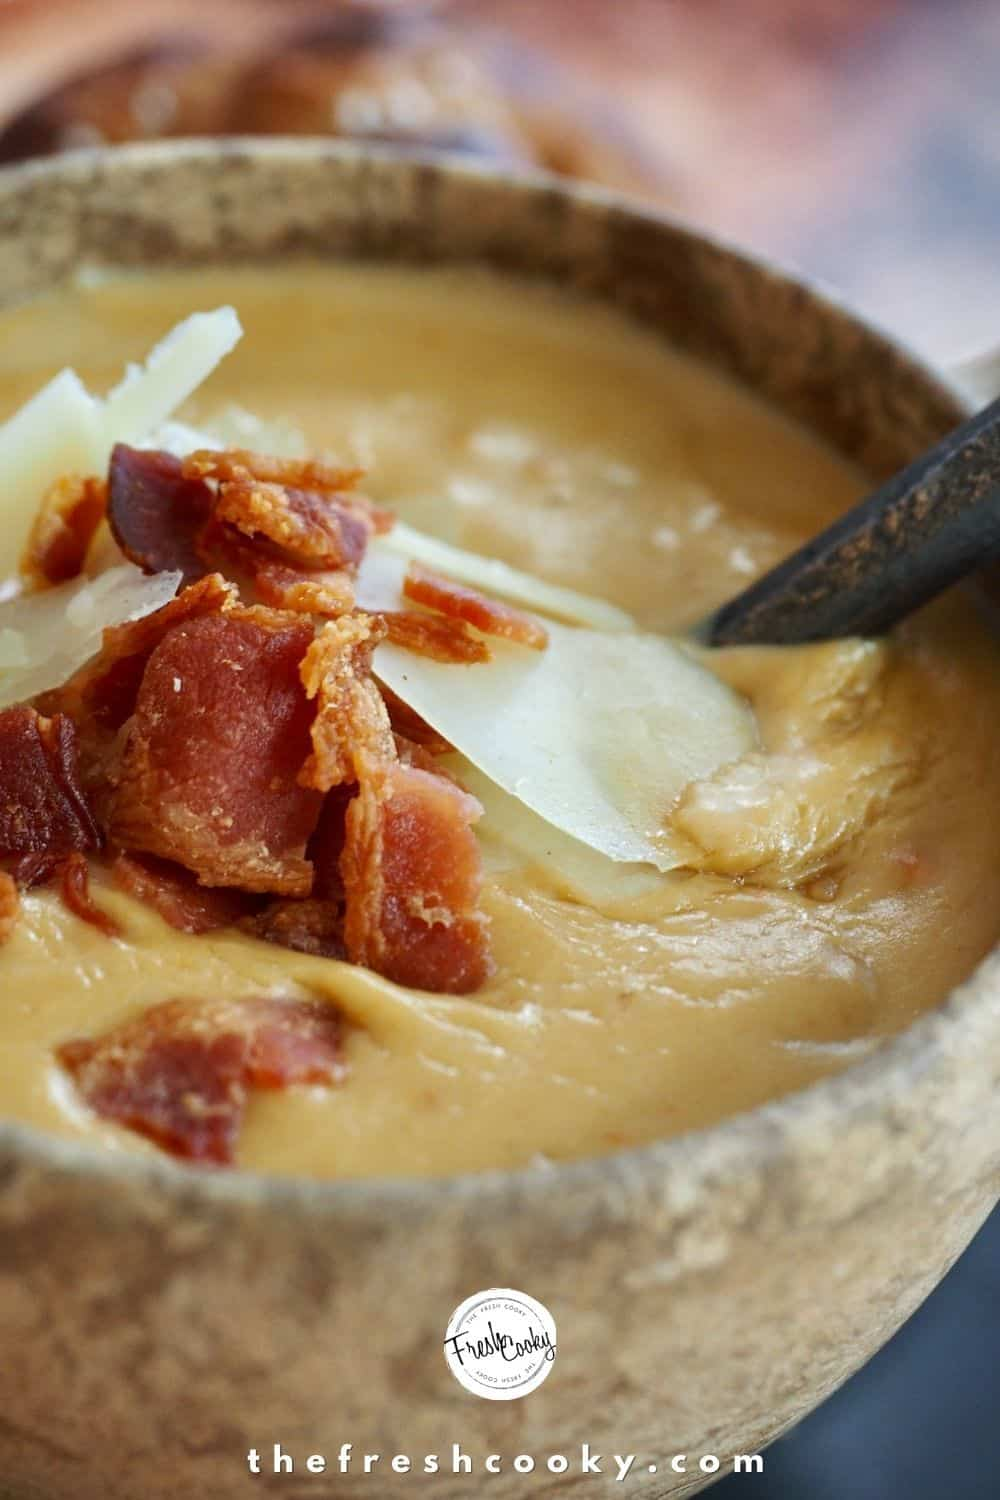 A hearty and delicious traditional German Beer Cheese Soup perfect for Oktoberfest! All natural creamy, easy cheese soup, using white cheddar cheese, bacon, chicken stock - it's the best fall comfort food soup! Great for parties, or a chilly Fall dinner or lunch. #thefreshcooky #fallsouprecipes #beercheesesoup via @thefreshcooky